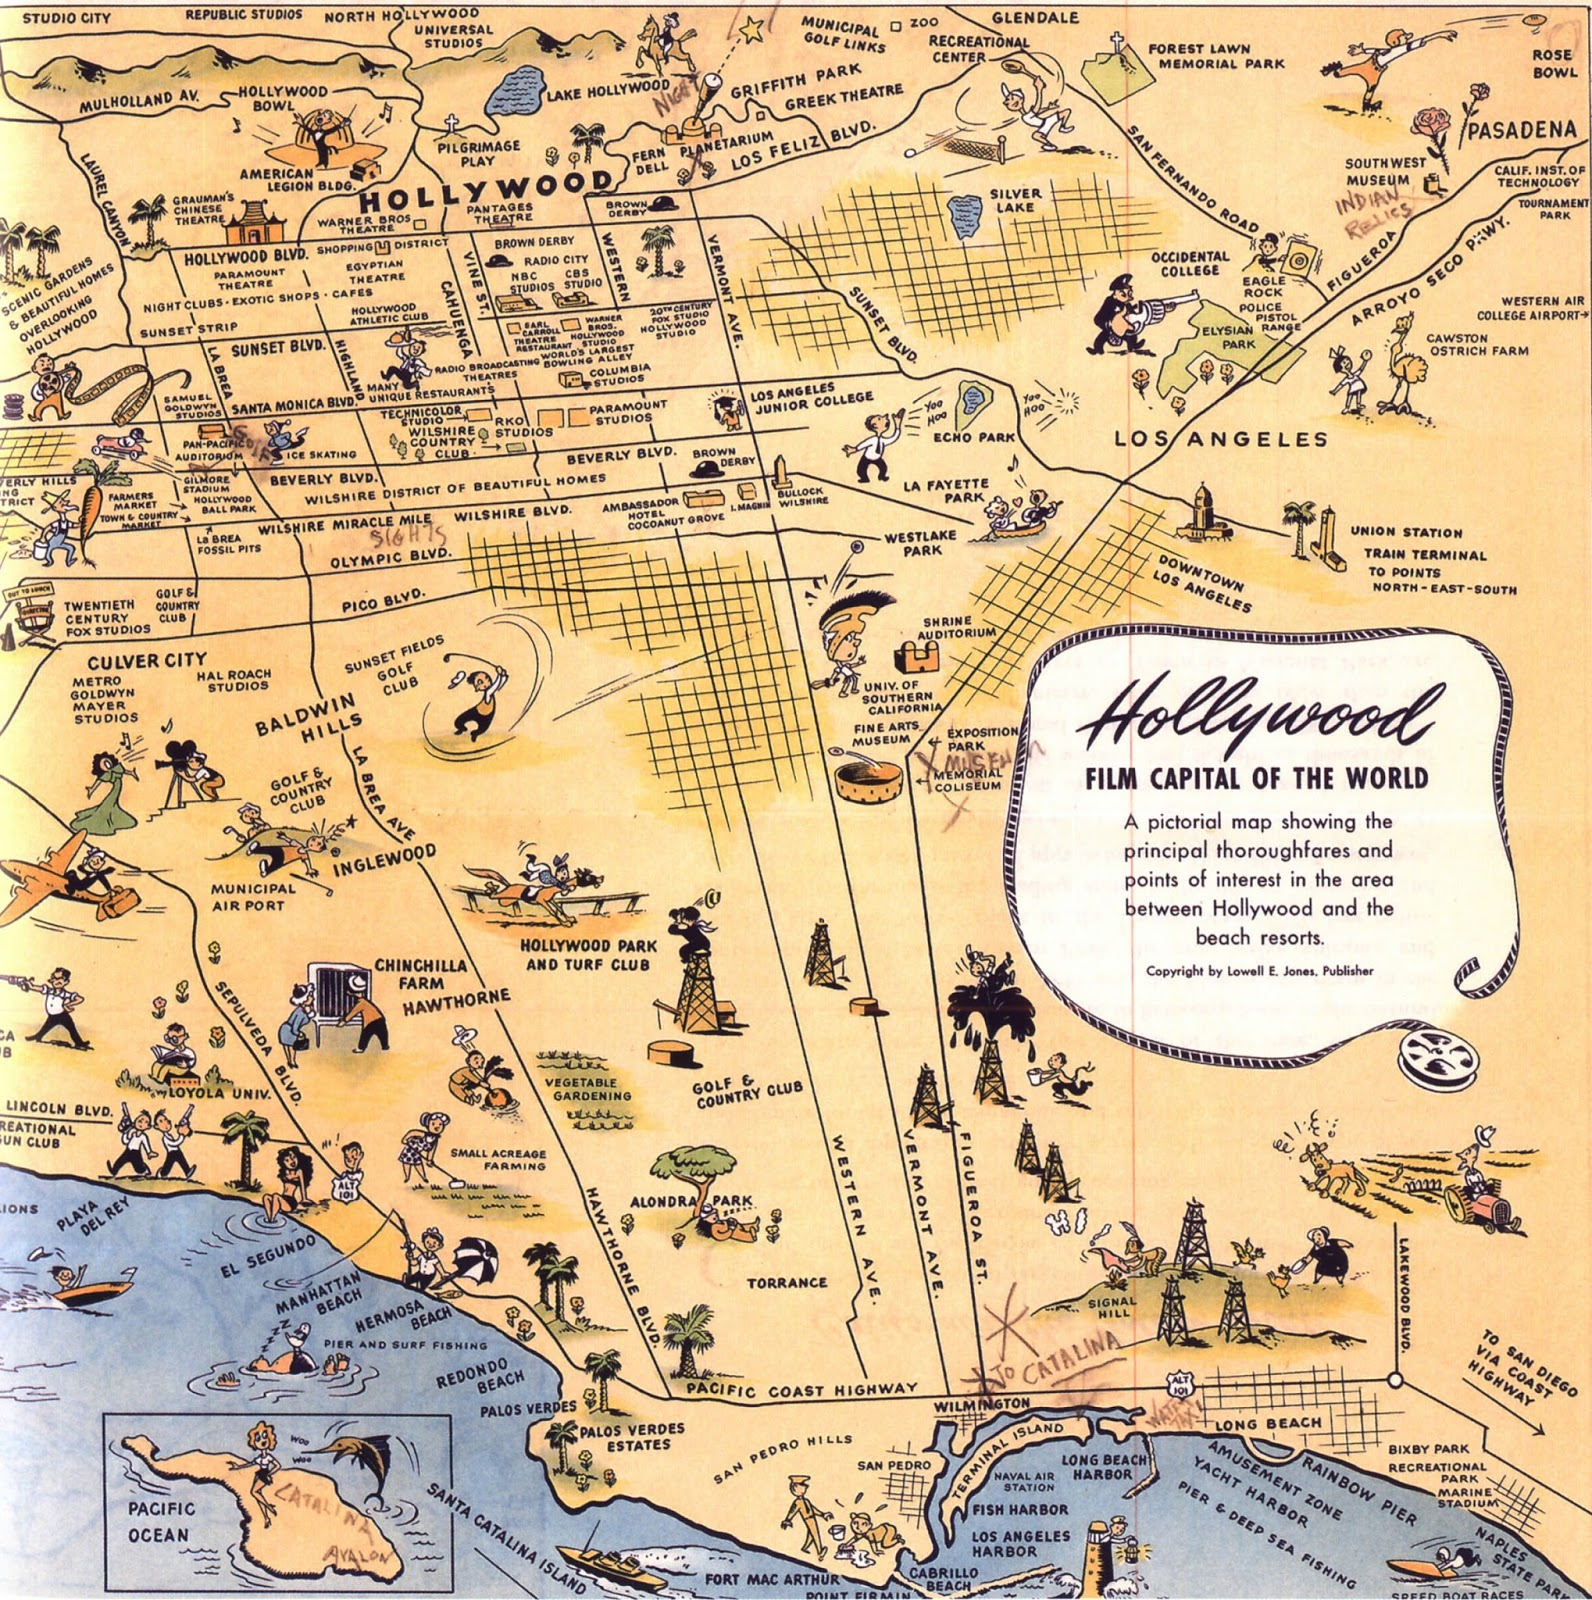 maps of los angeles available from ball state university libraries